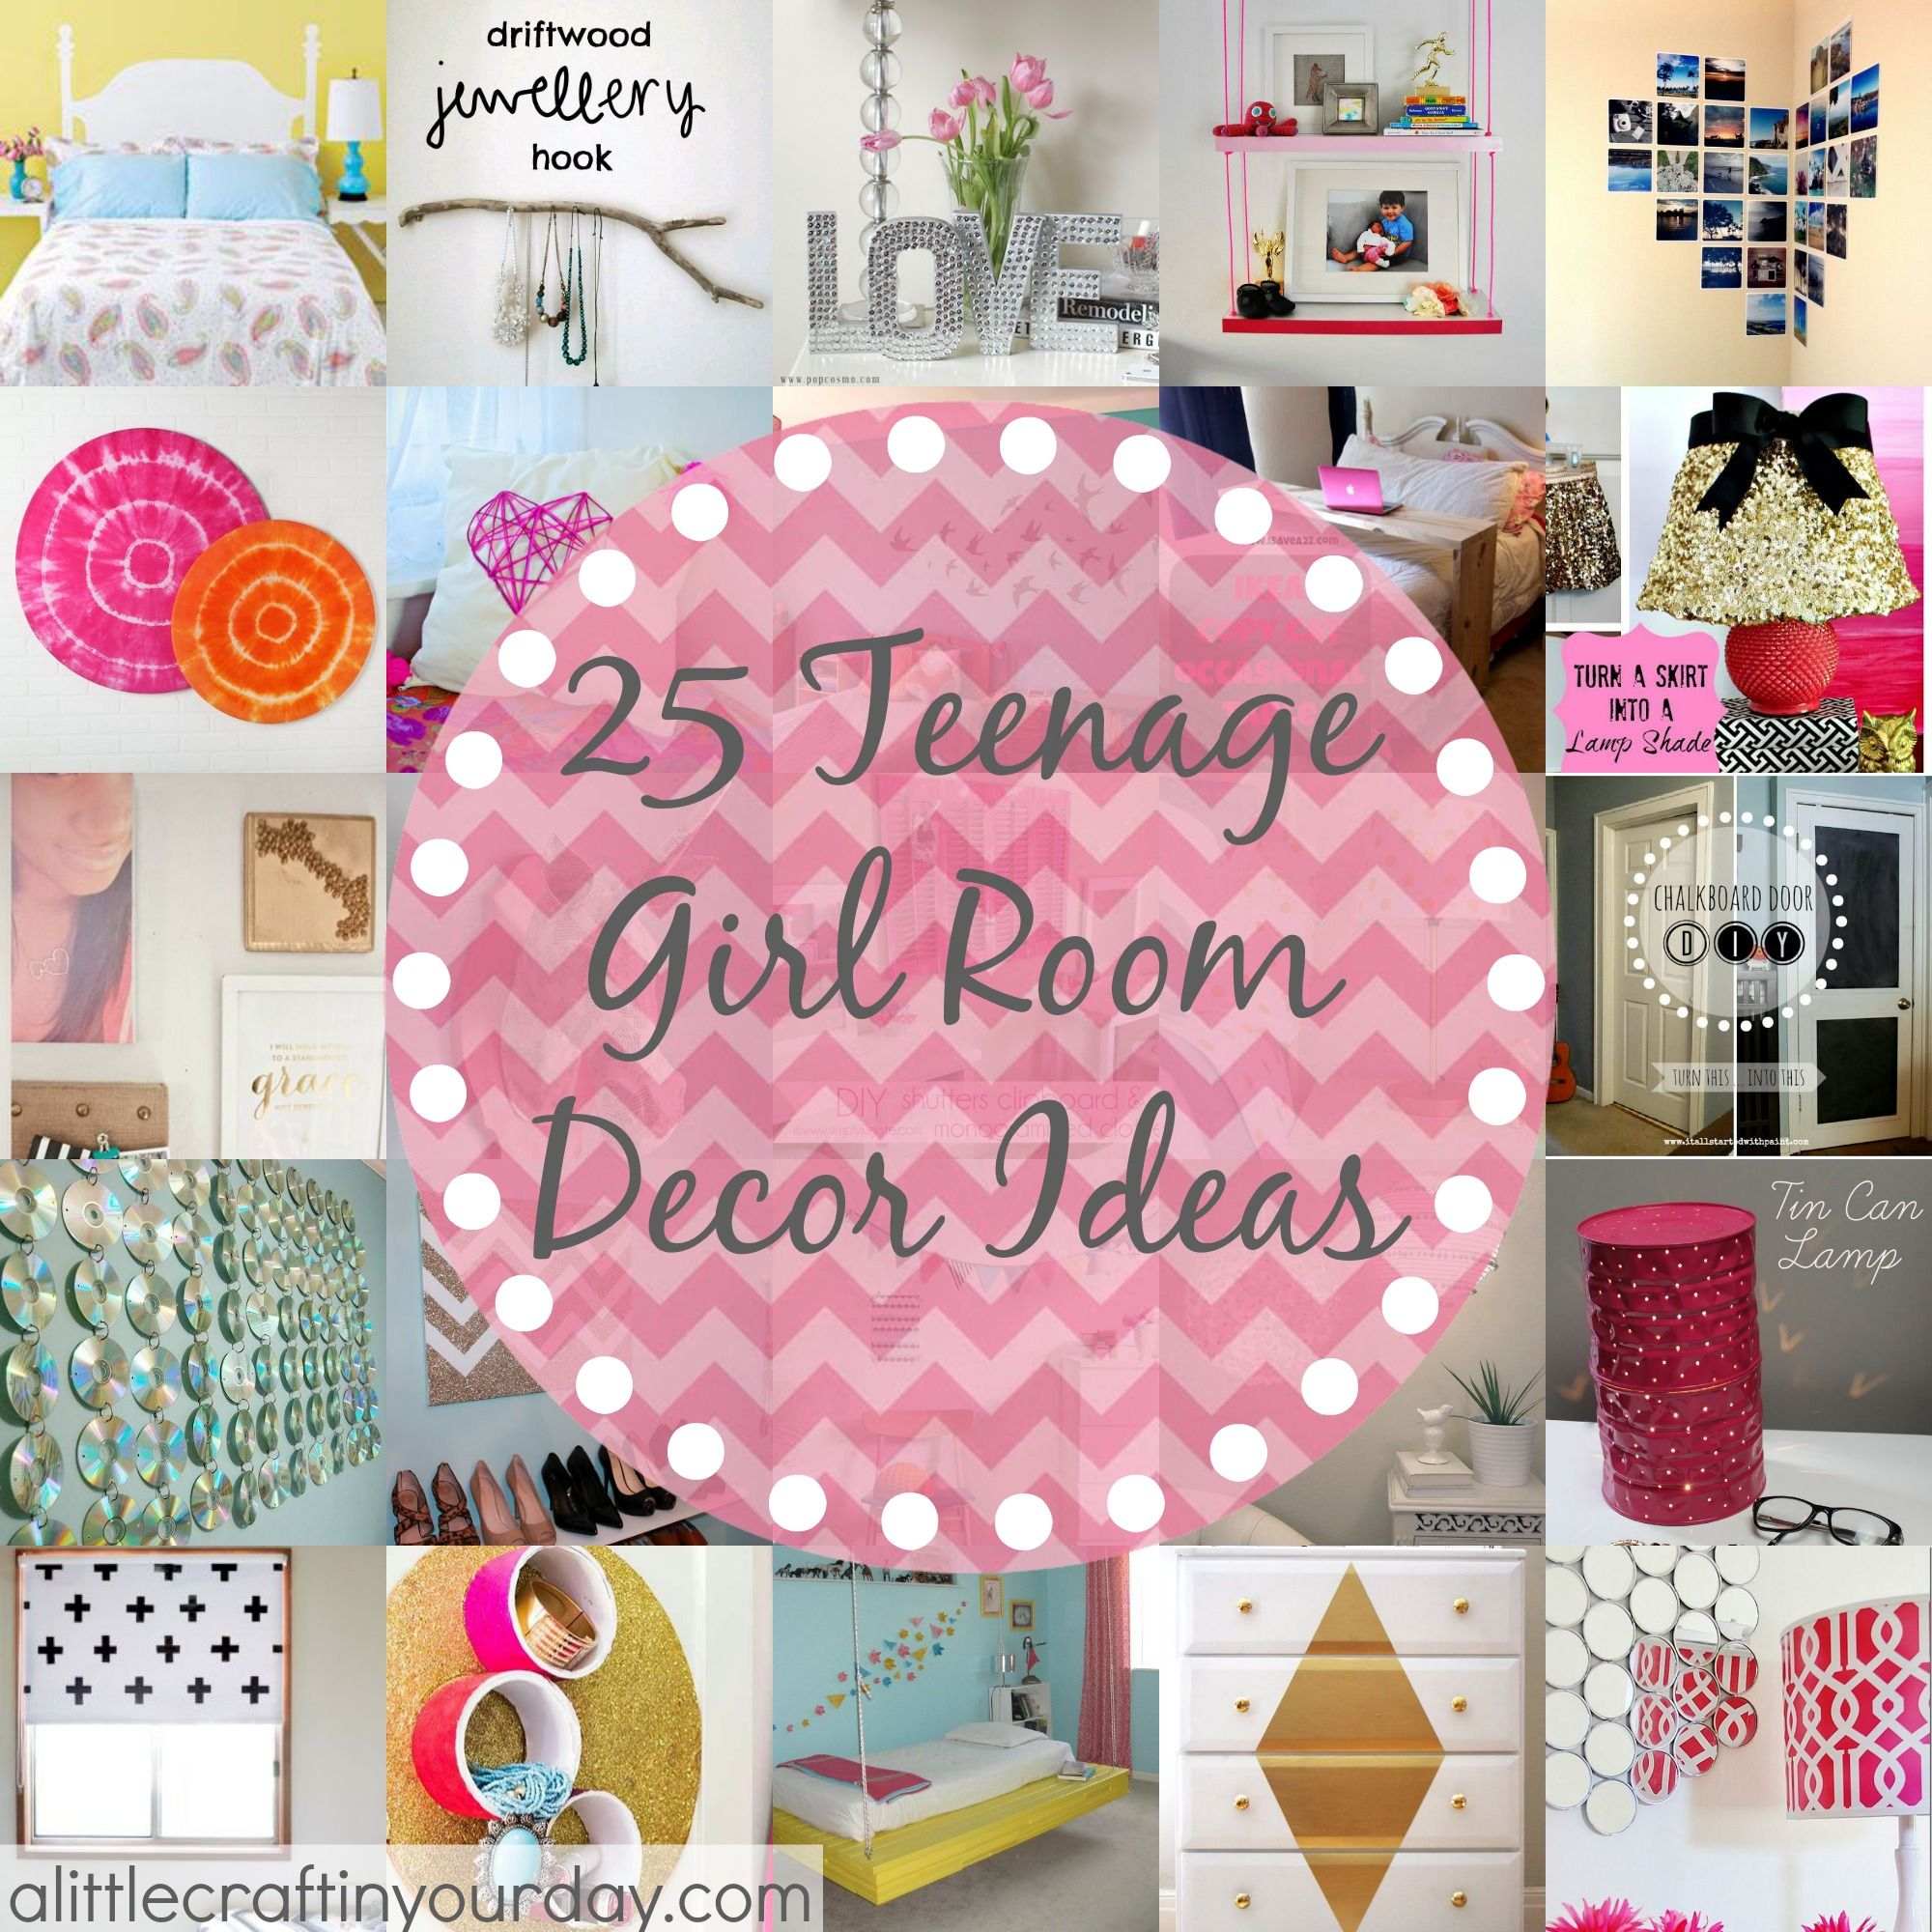 Girl room decorating on pinterest tie dye bedroom hot - Room decor ideas for girls ...